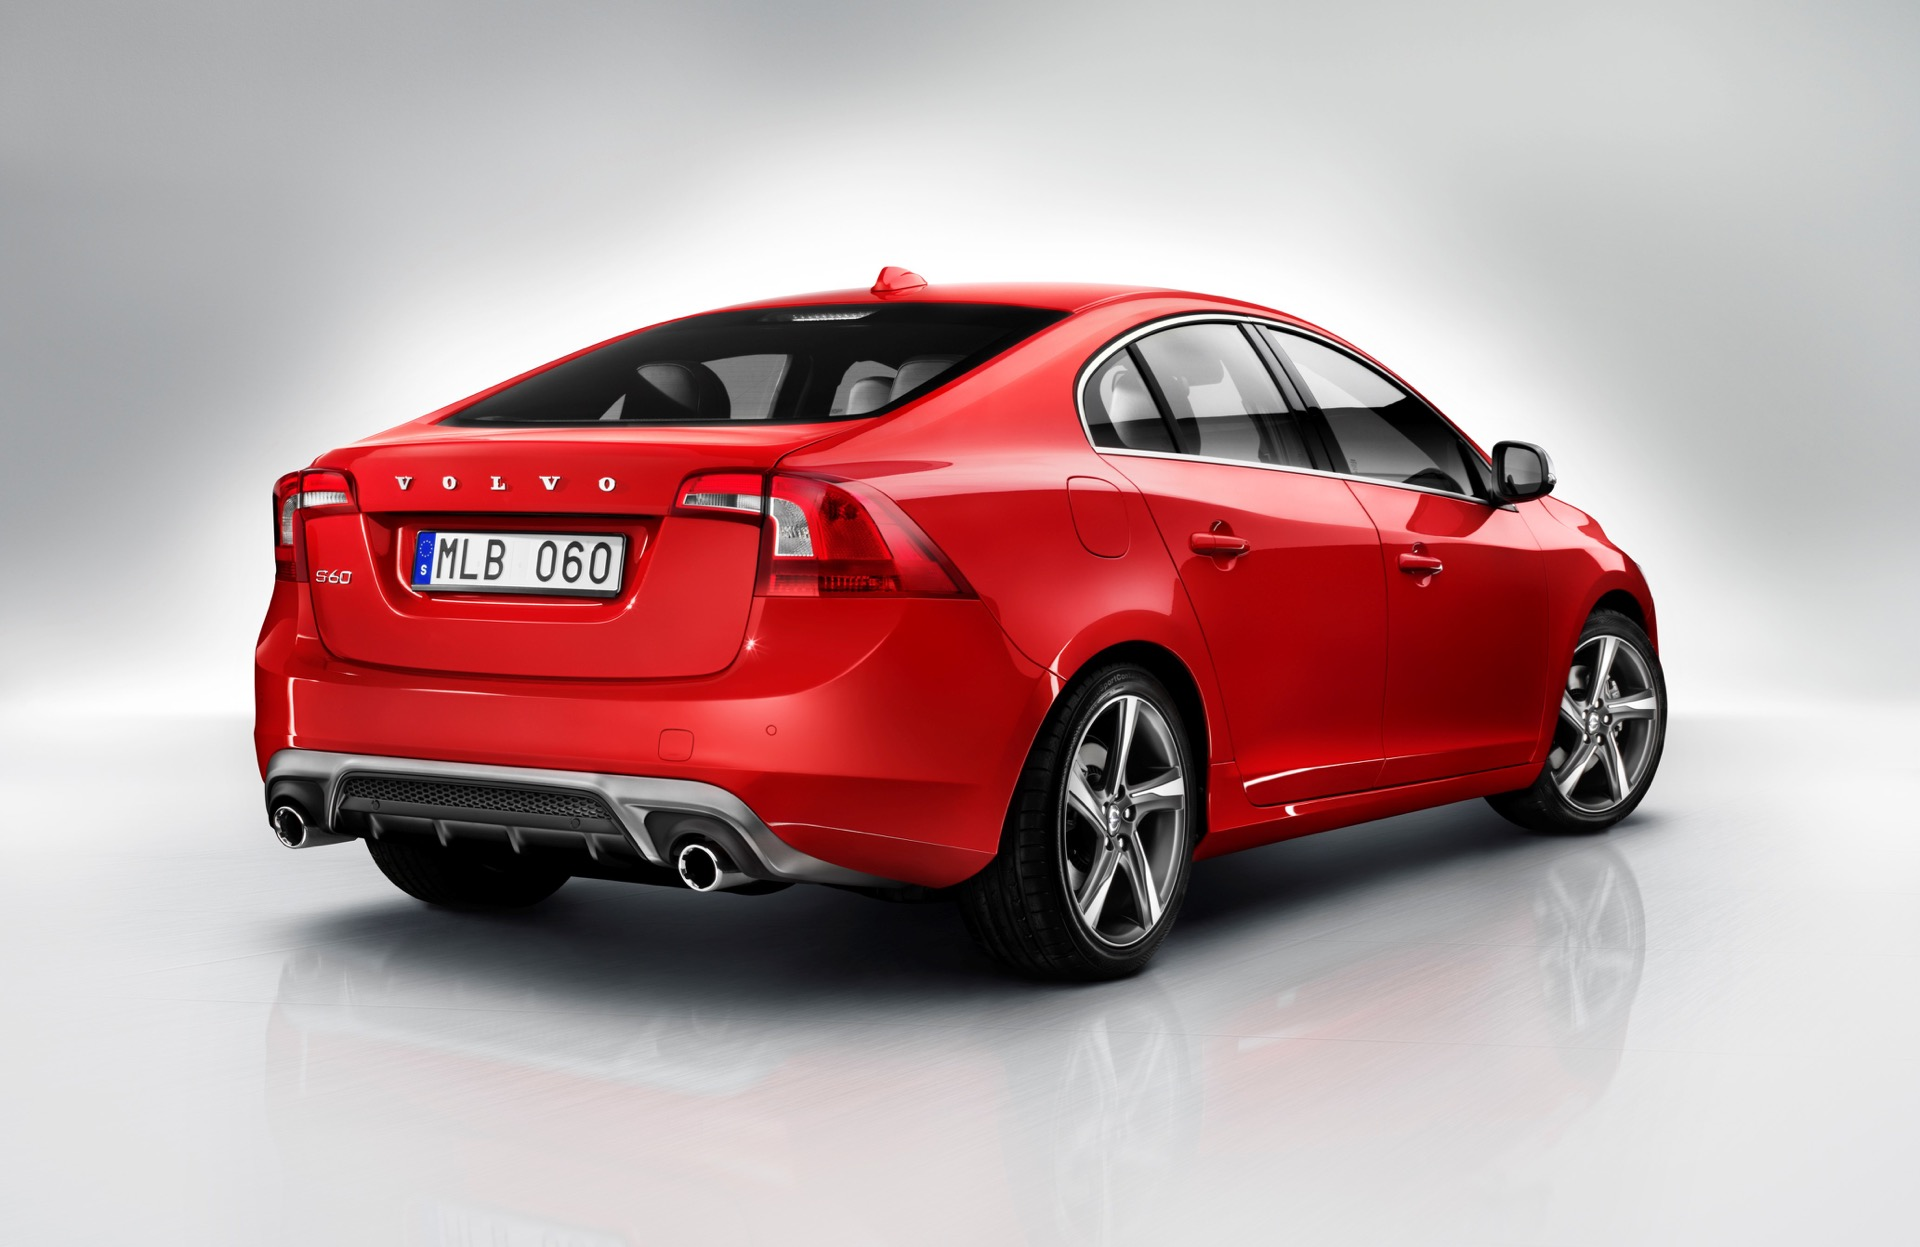 Volvo S60 R Design -  2013, 2014, Exterior, Images, Motor Shows, S60, Volvo